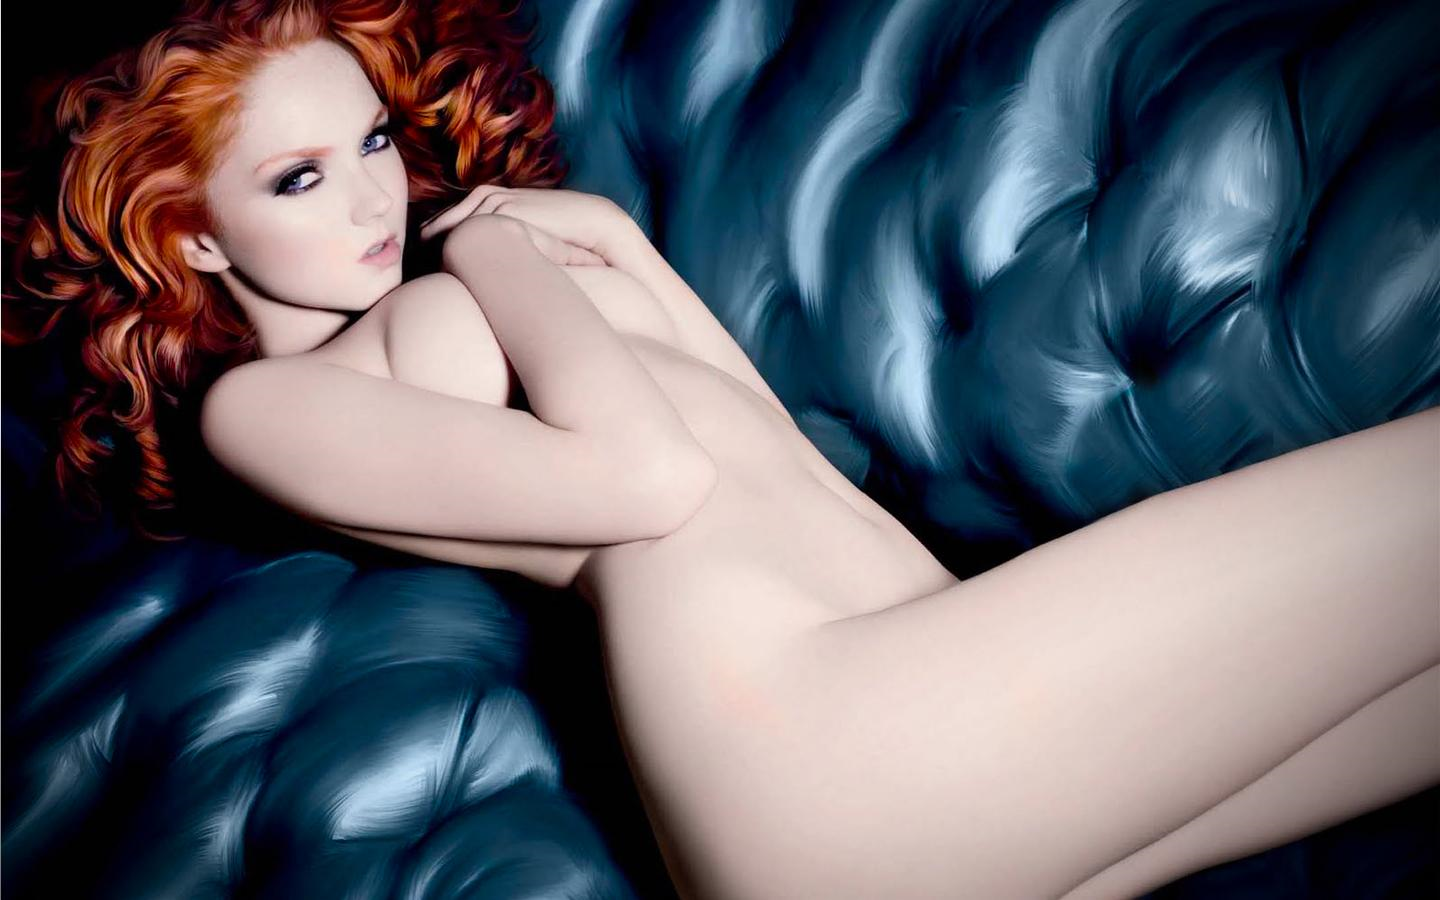 lily cole nude   1 pictures in an infinite scroll